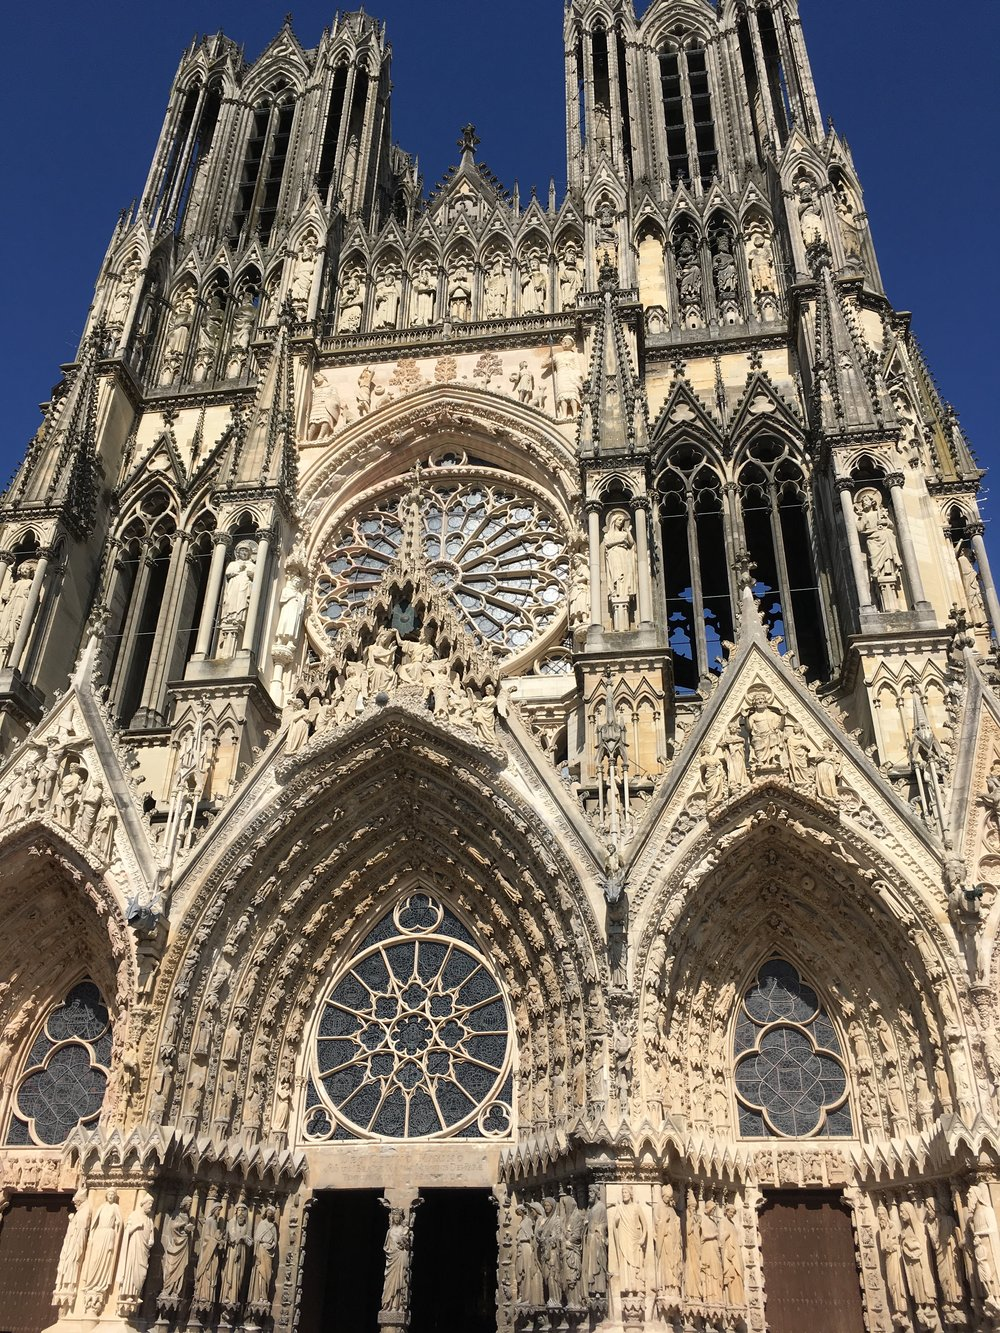 Reims Cathedral (Our Lady of Reims, French: Notre-Dame de Reims)